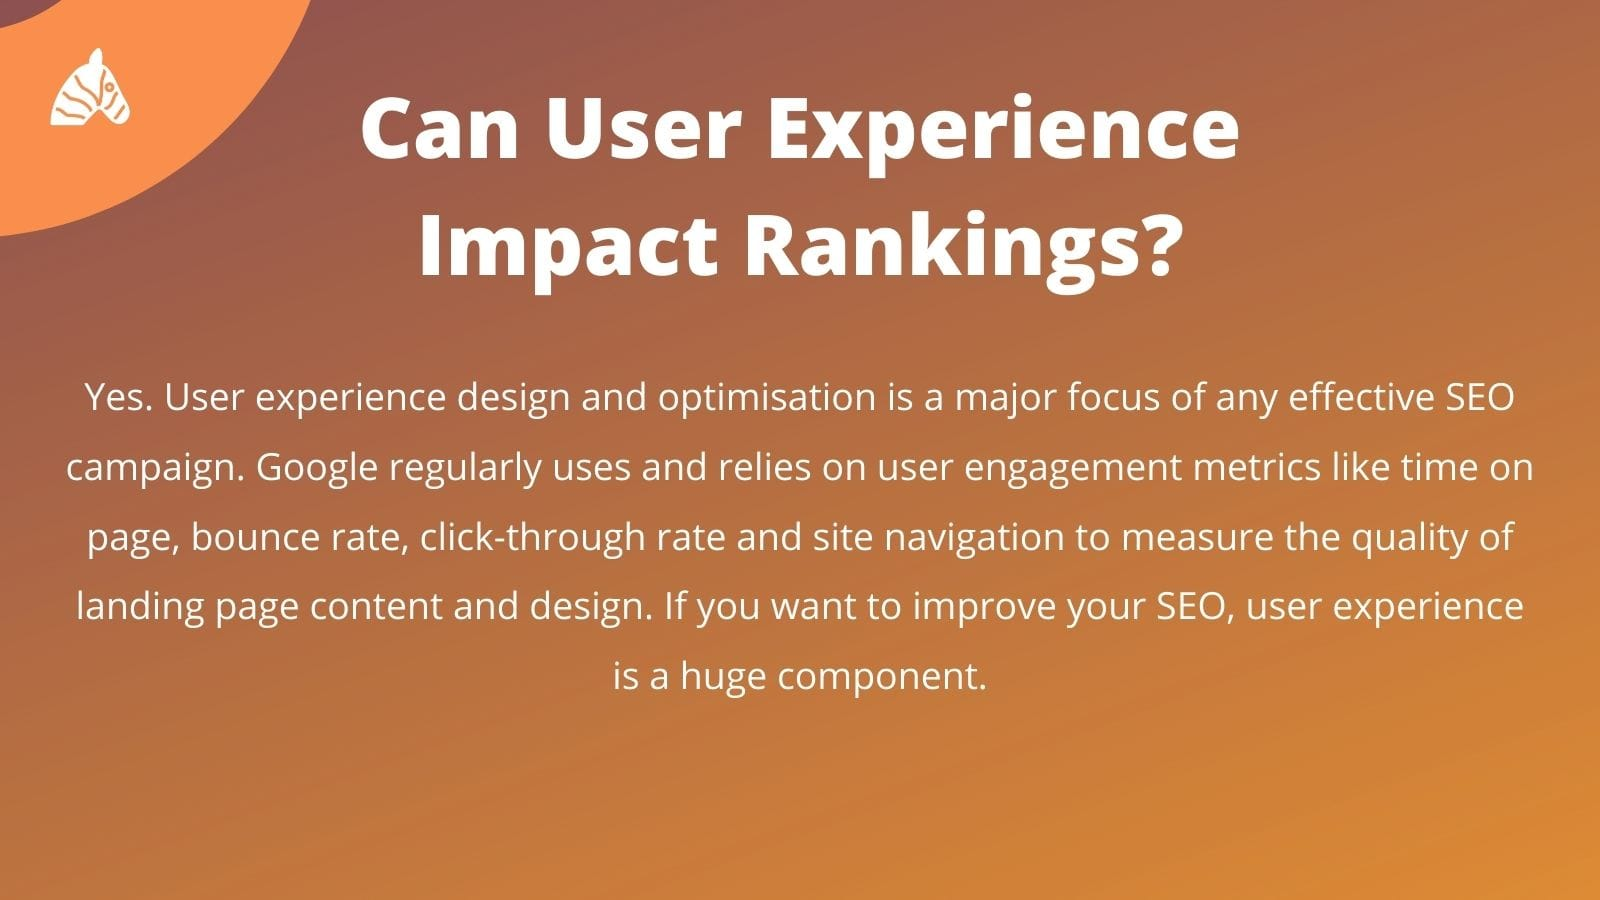 user experience and seo rankings relationship